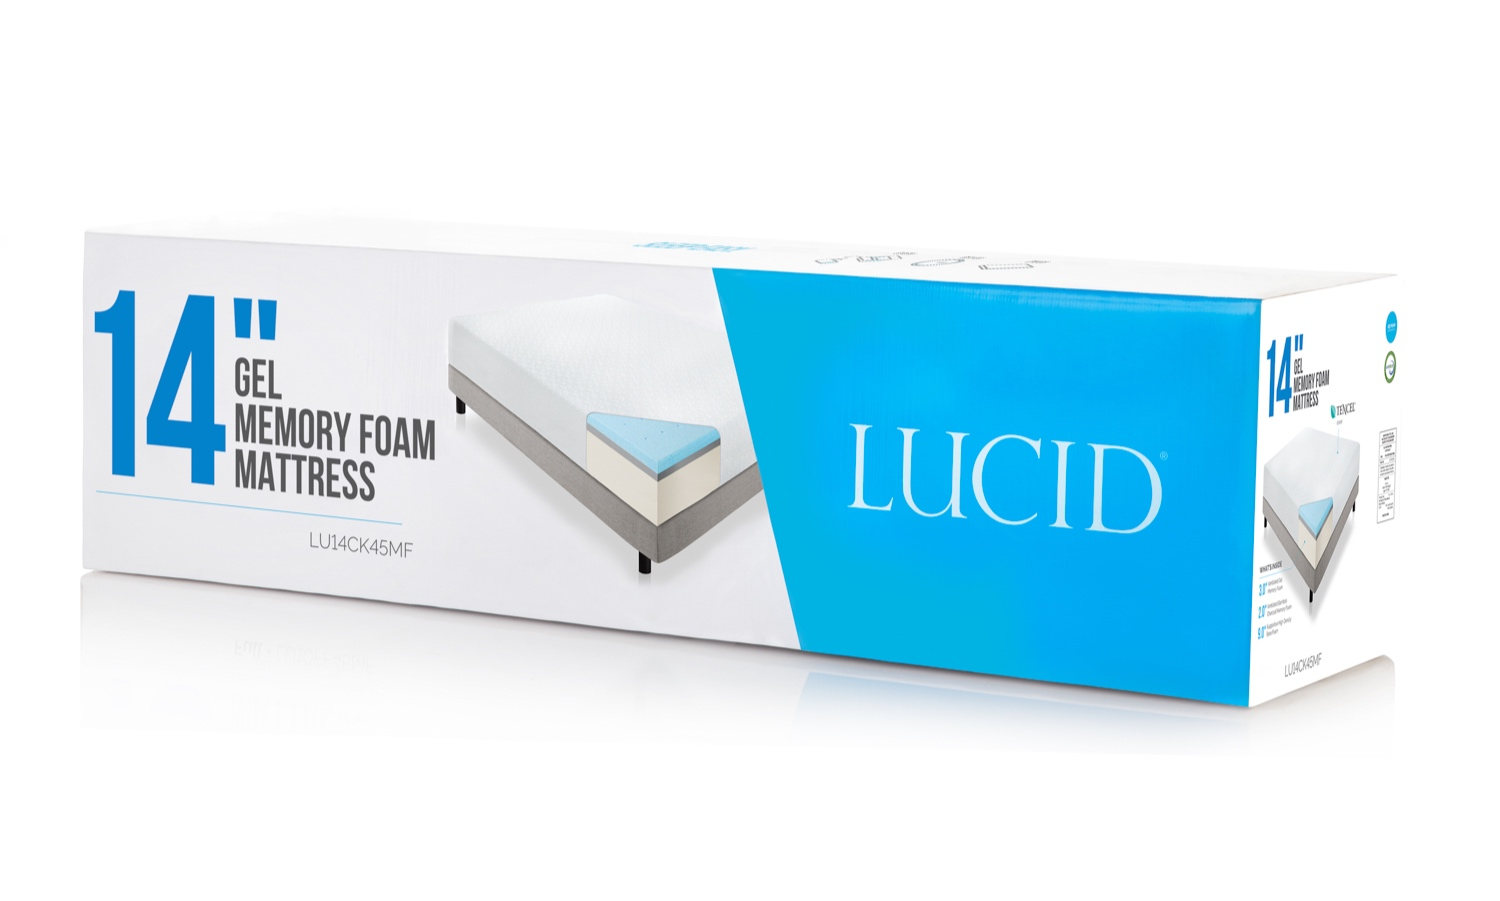 Lucid Mattresses Product & Package design